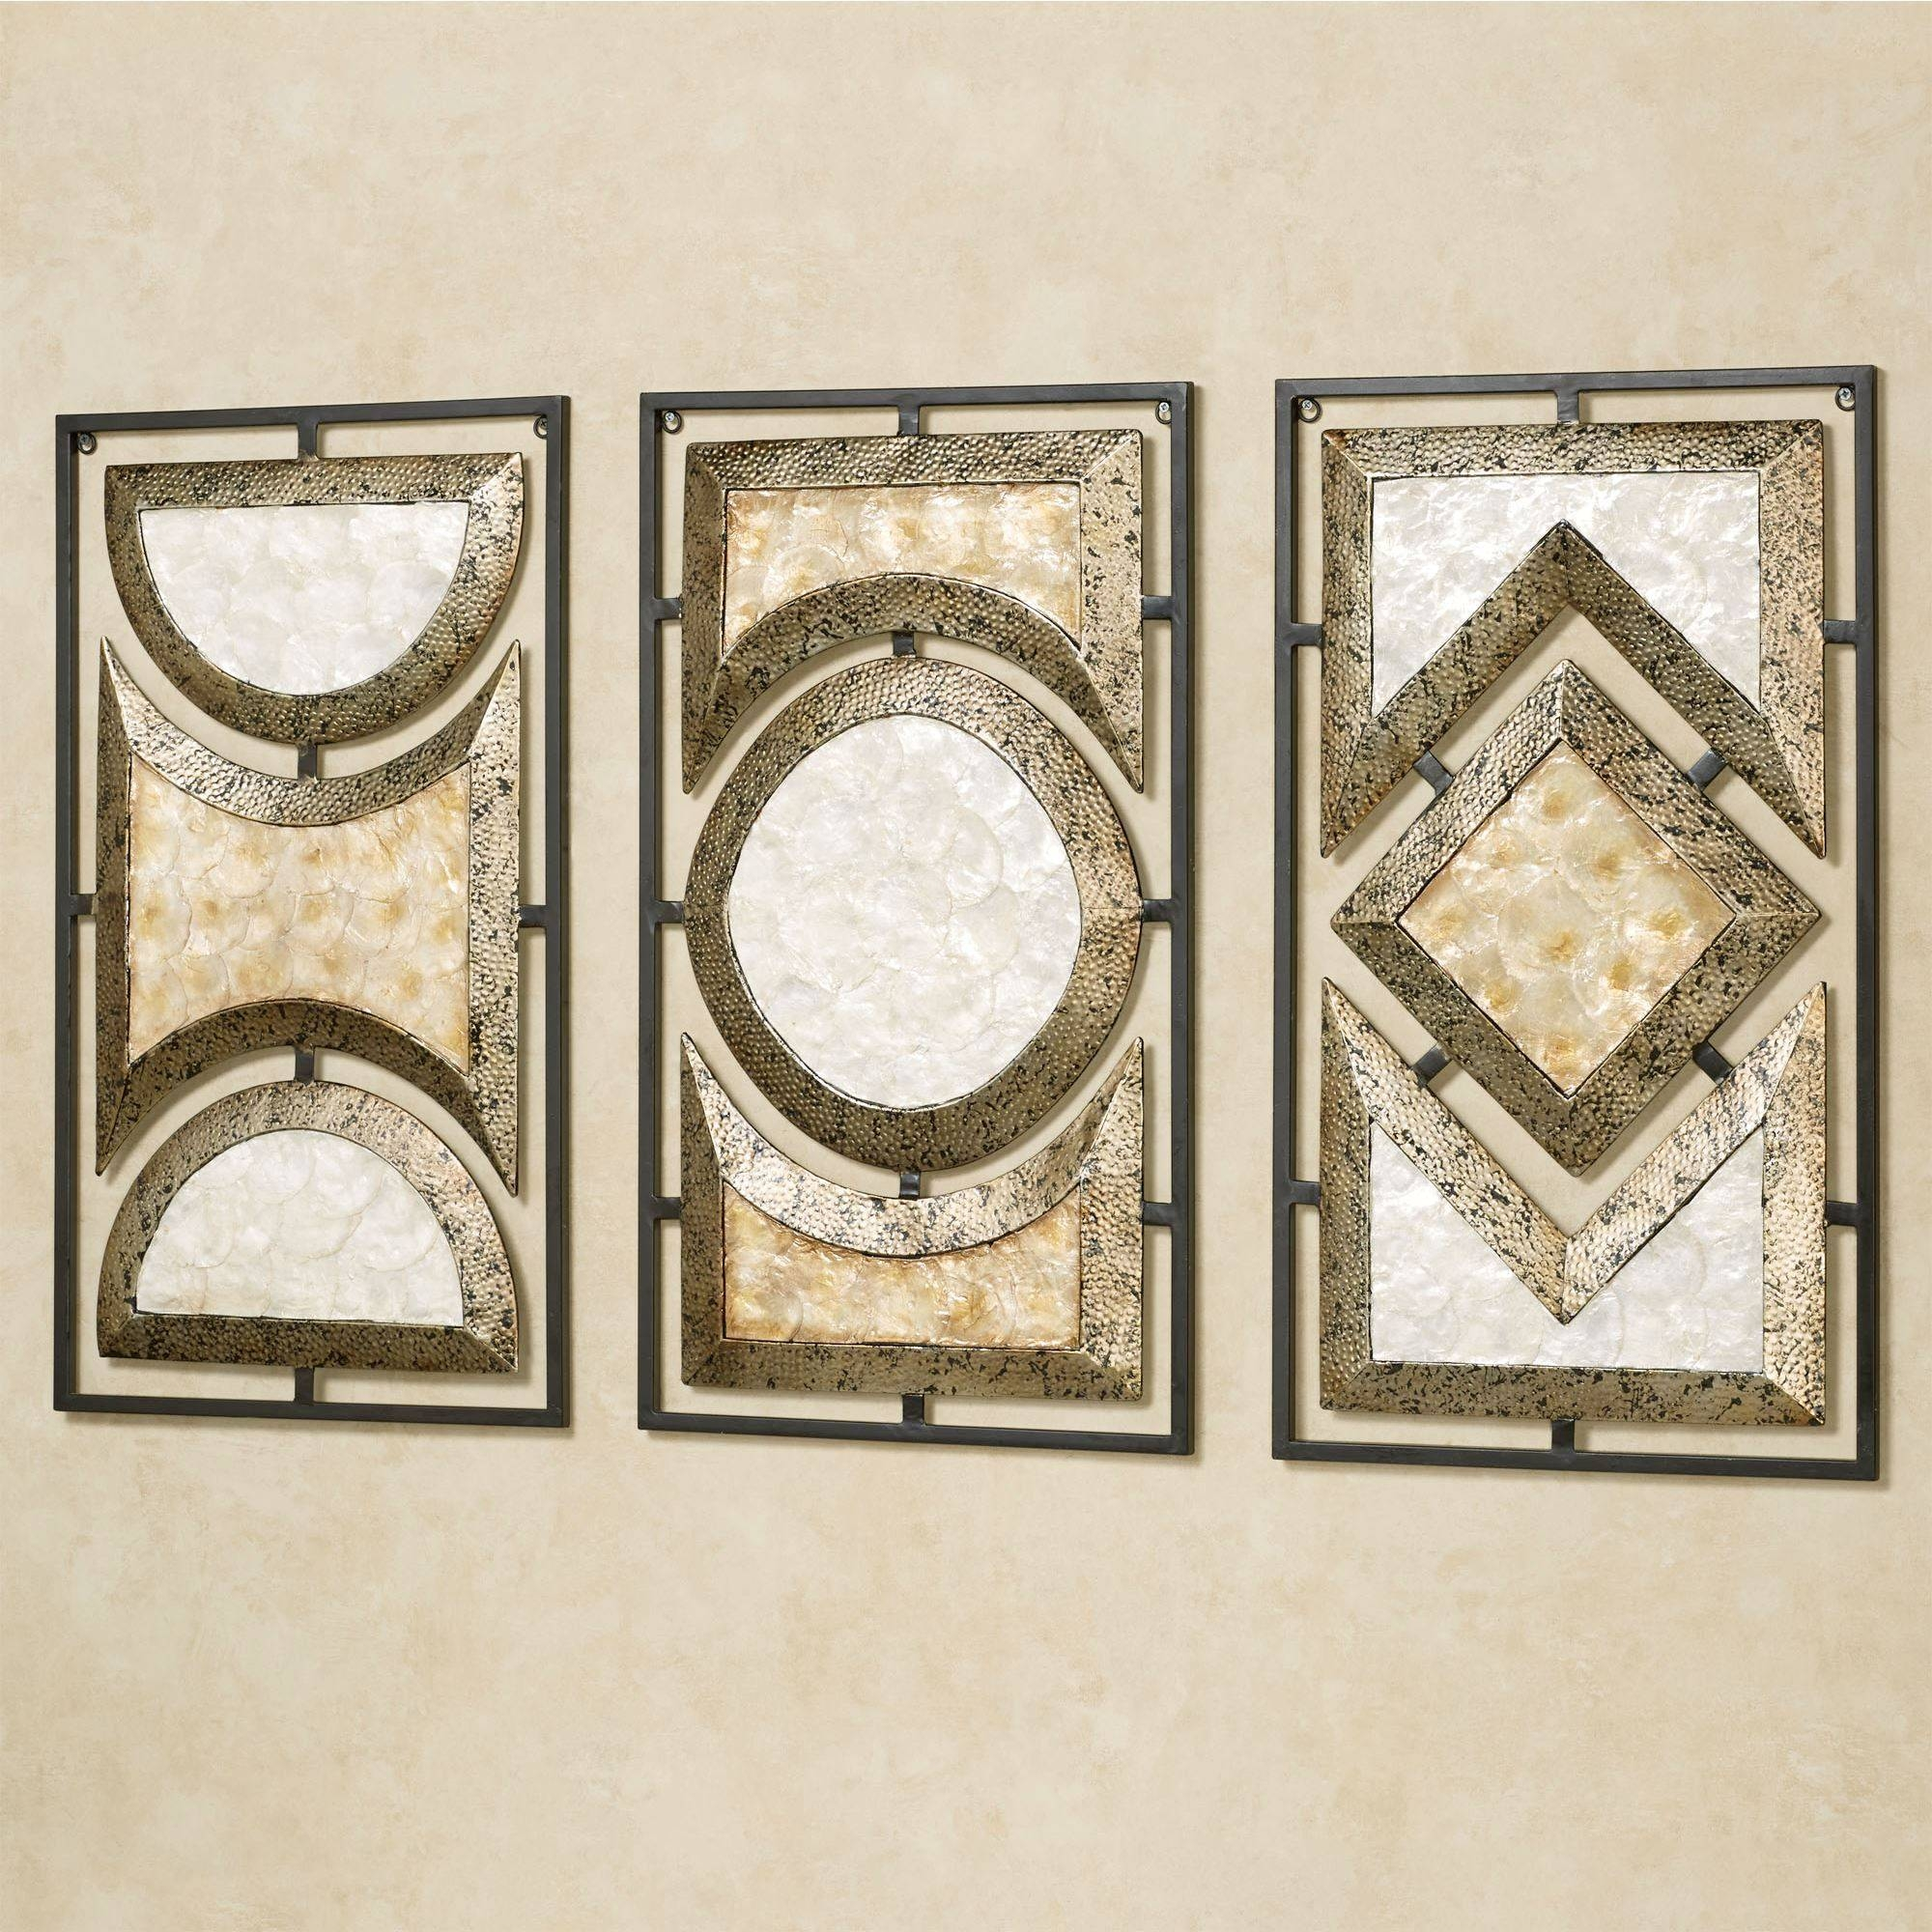 Pasquale Capiz Shell Metal Wall Art Set Throughout Most Popular Metal Wall Art Sets (View 12 of 20)